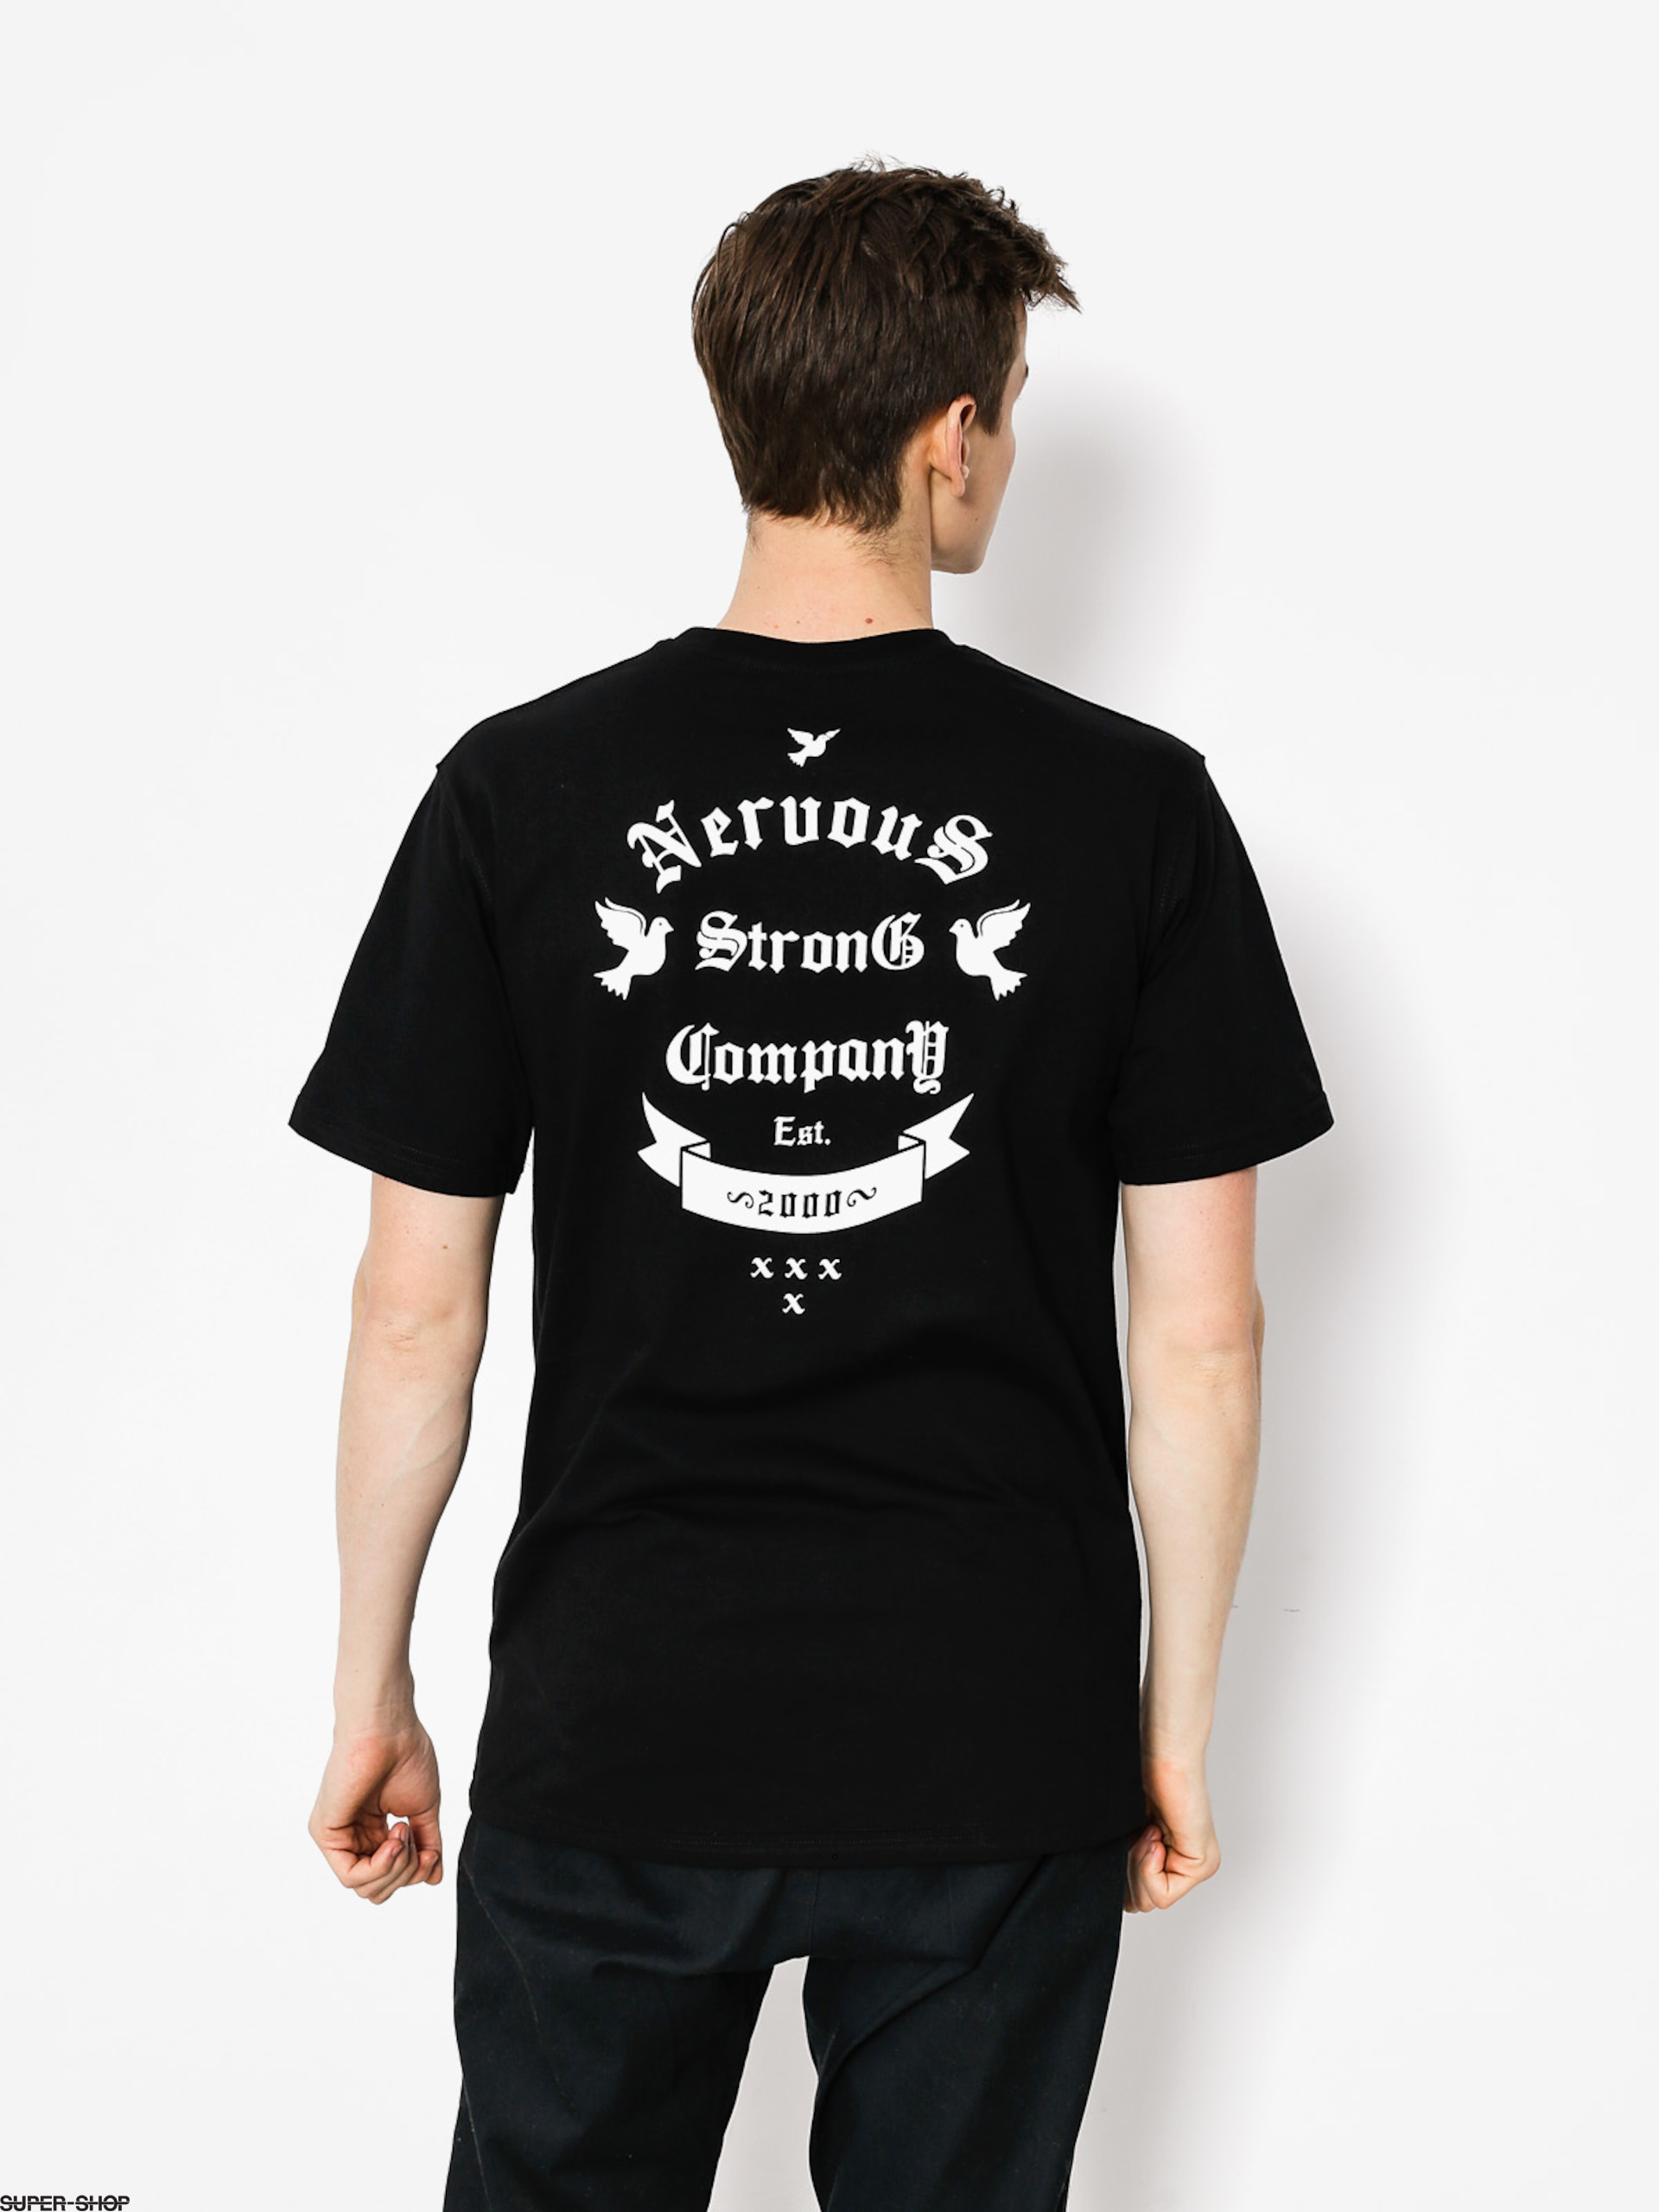 Nervous T-Shirt Arms (black)